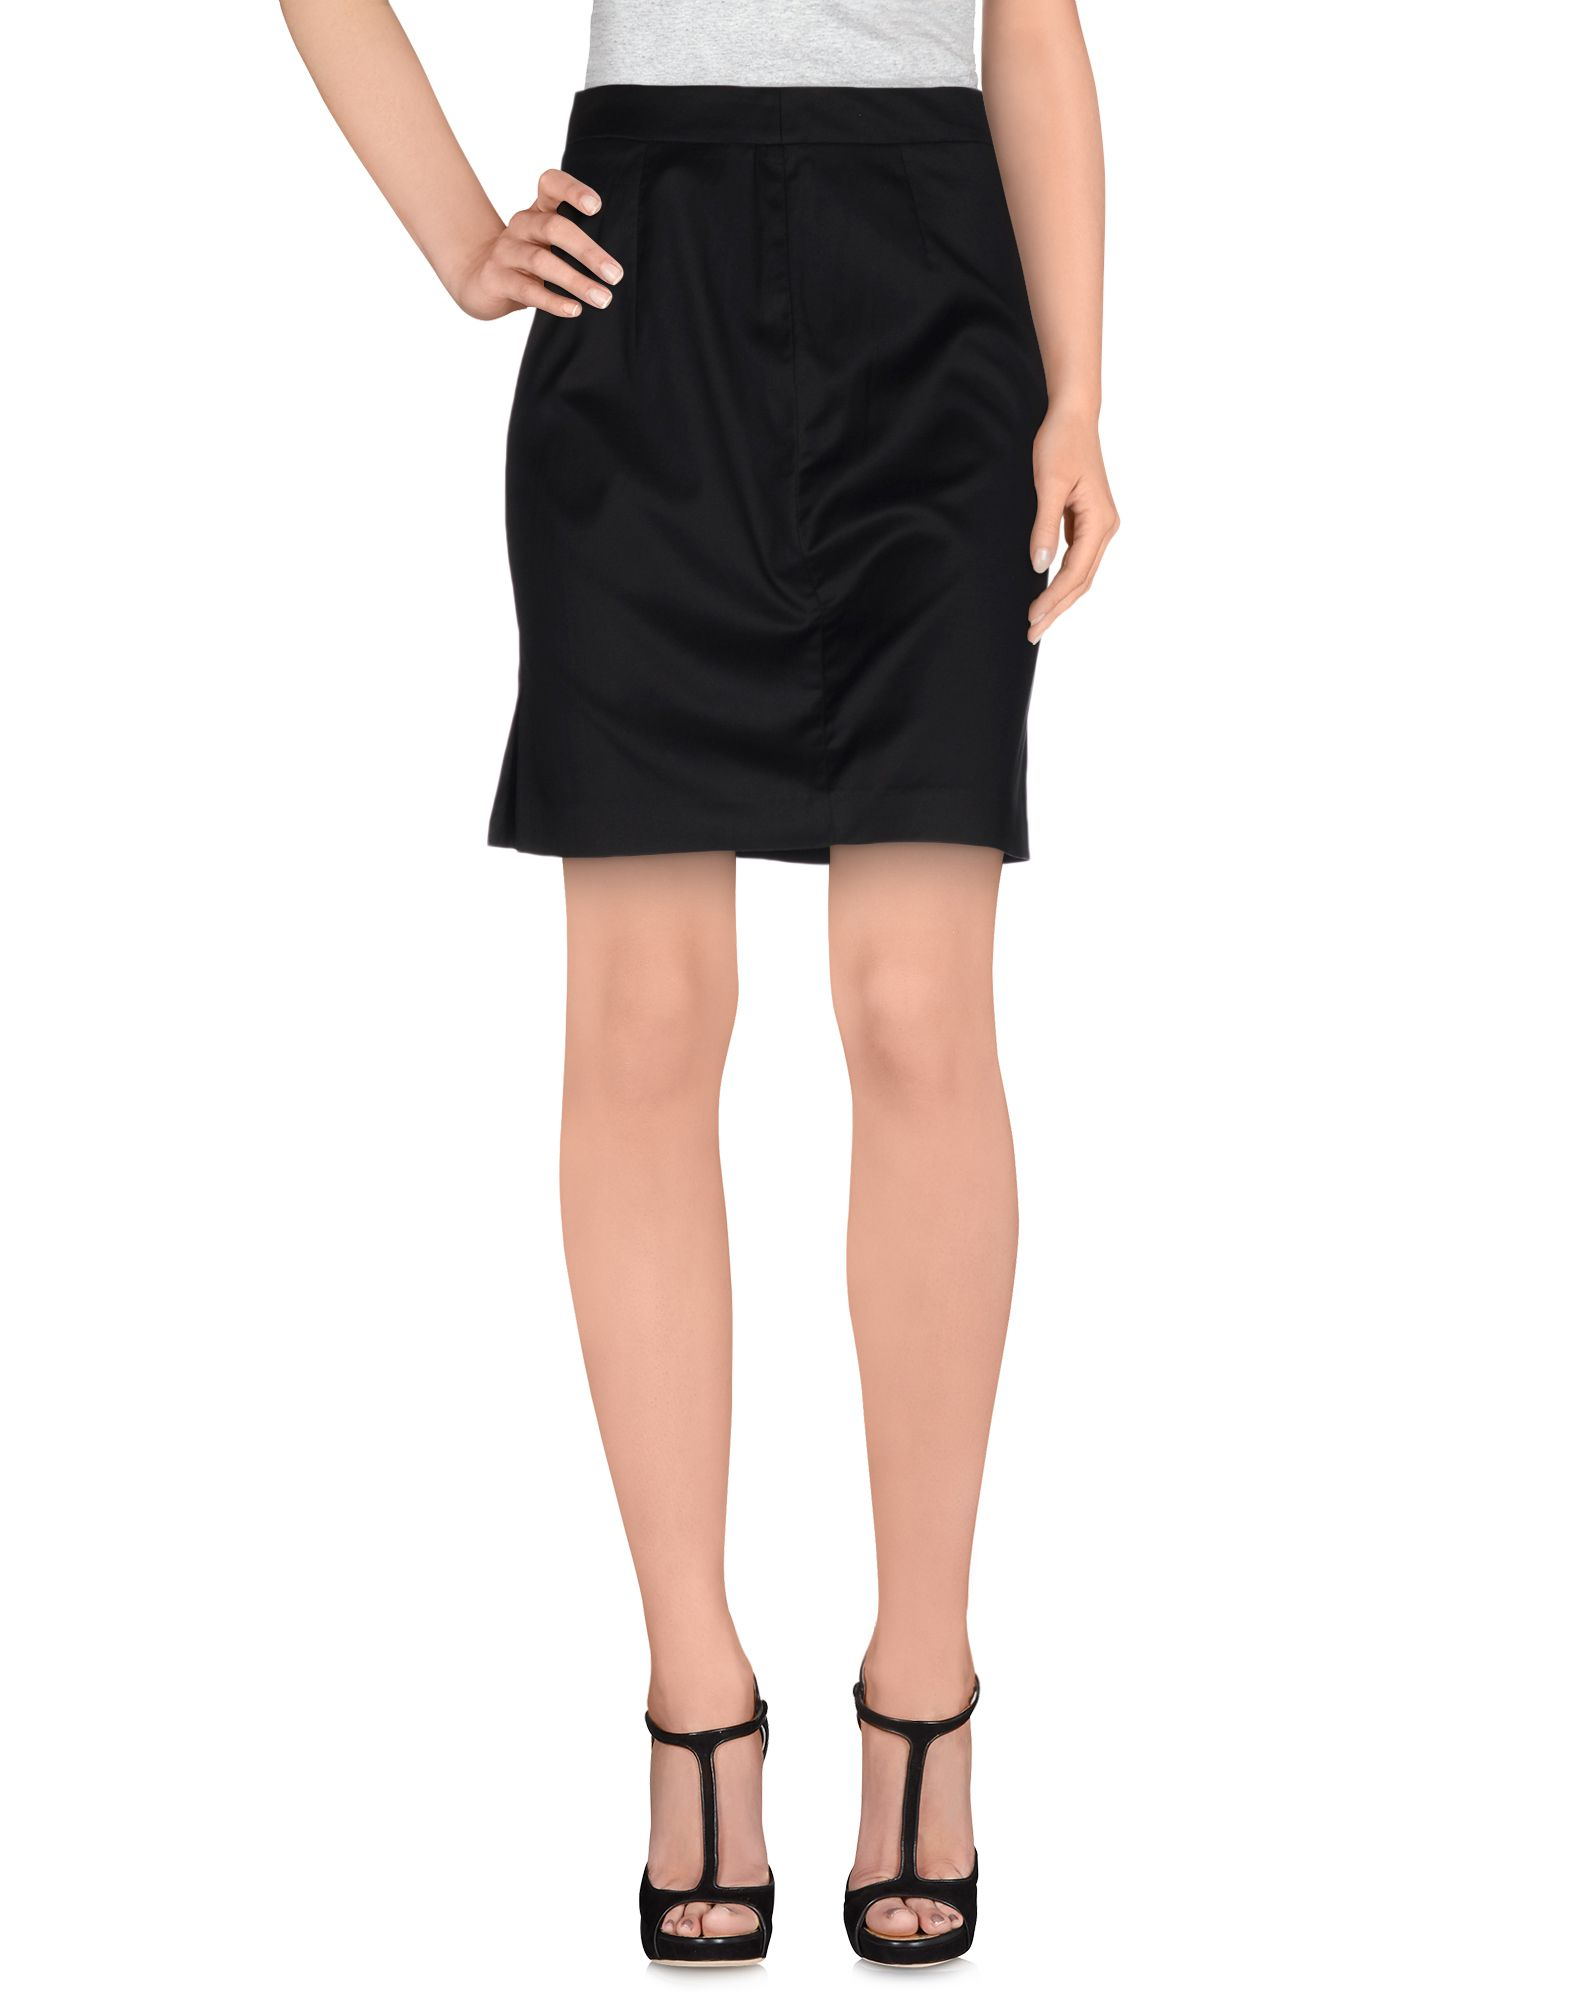 GUESS BY MARCIANO Юбка до колена юбка marciano guess 74g708 8494z a996